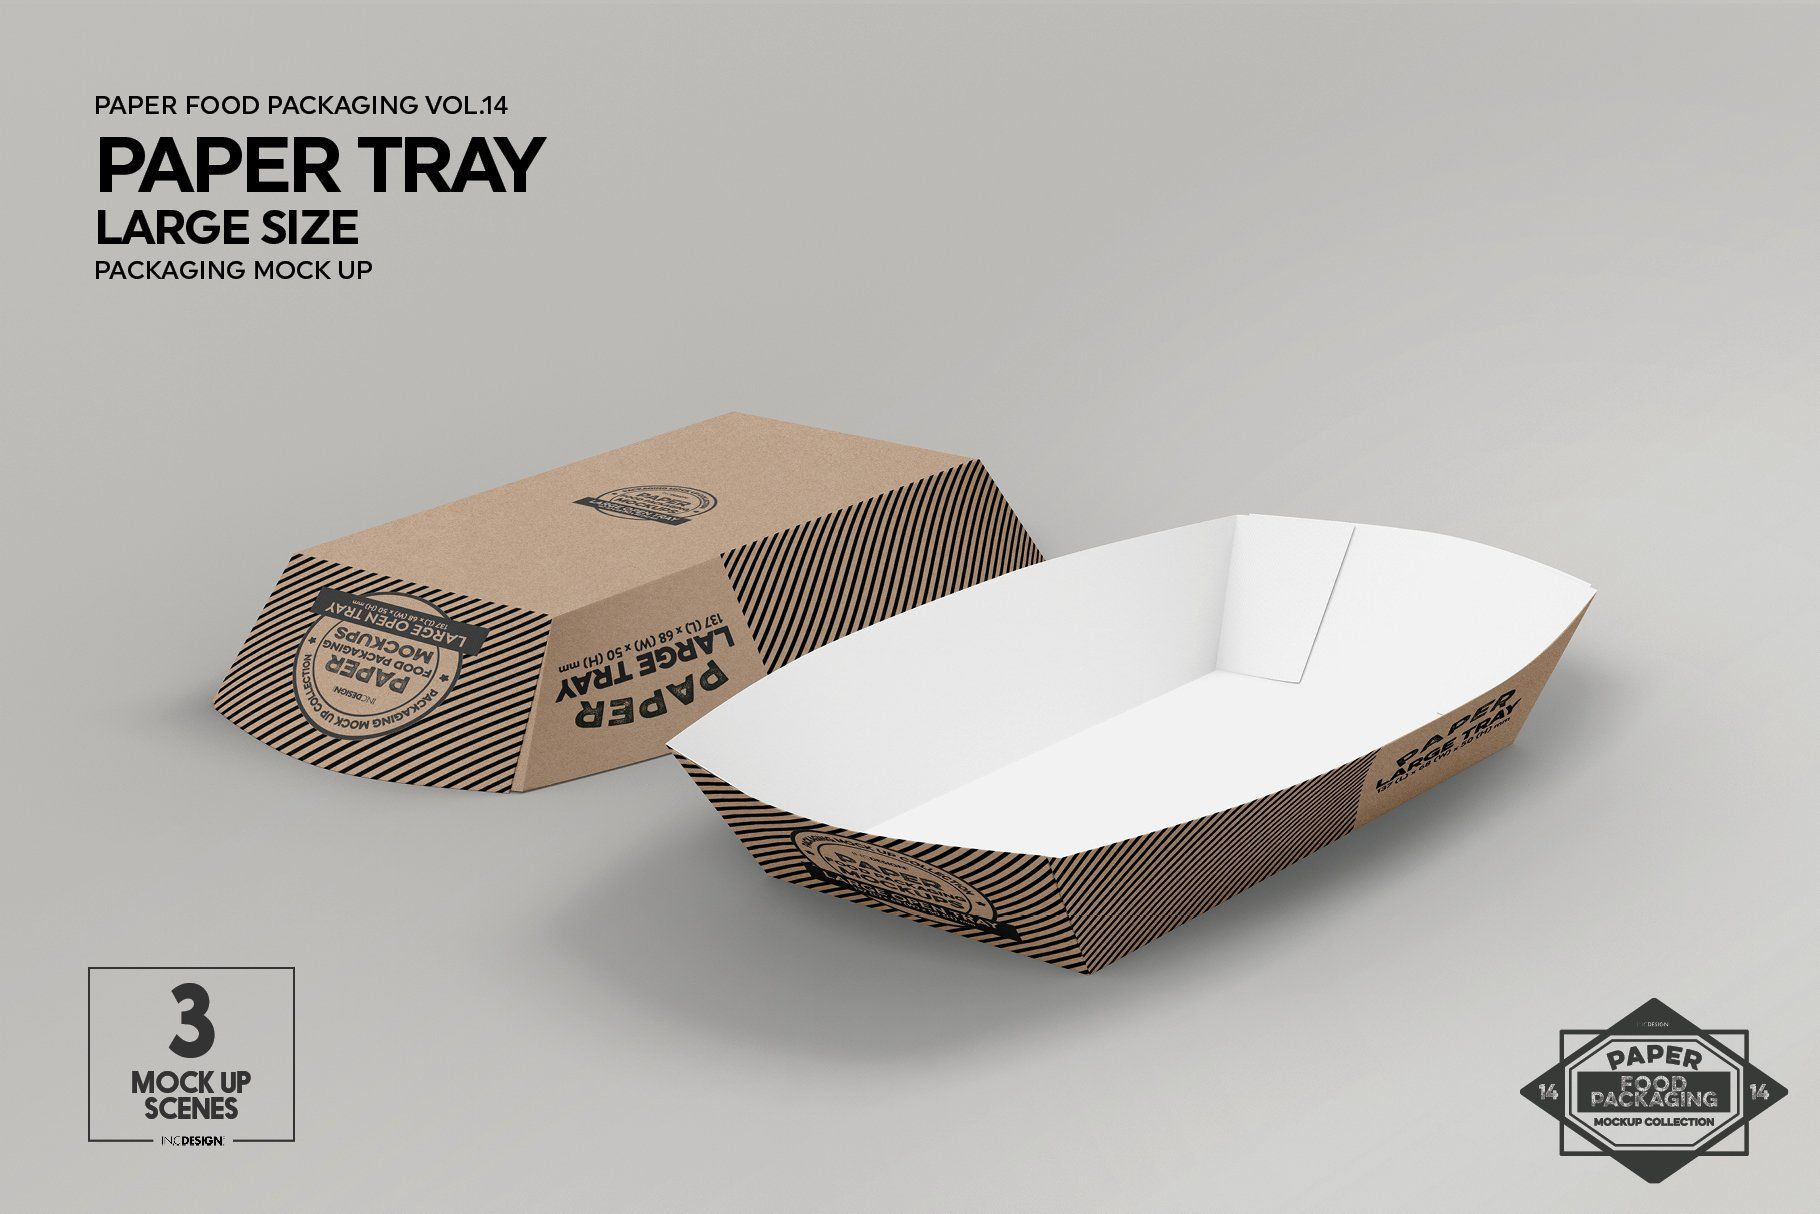 Paper Takeout Trays Packaging Mockup Packaging Mockup Free Packaging Mockup Food Box Packaging